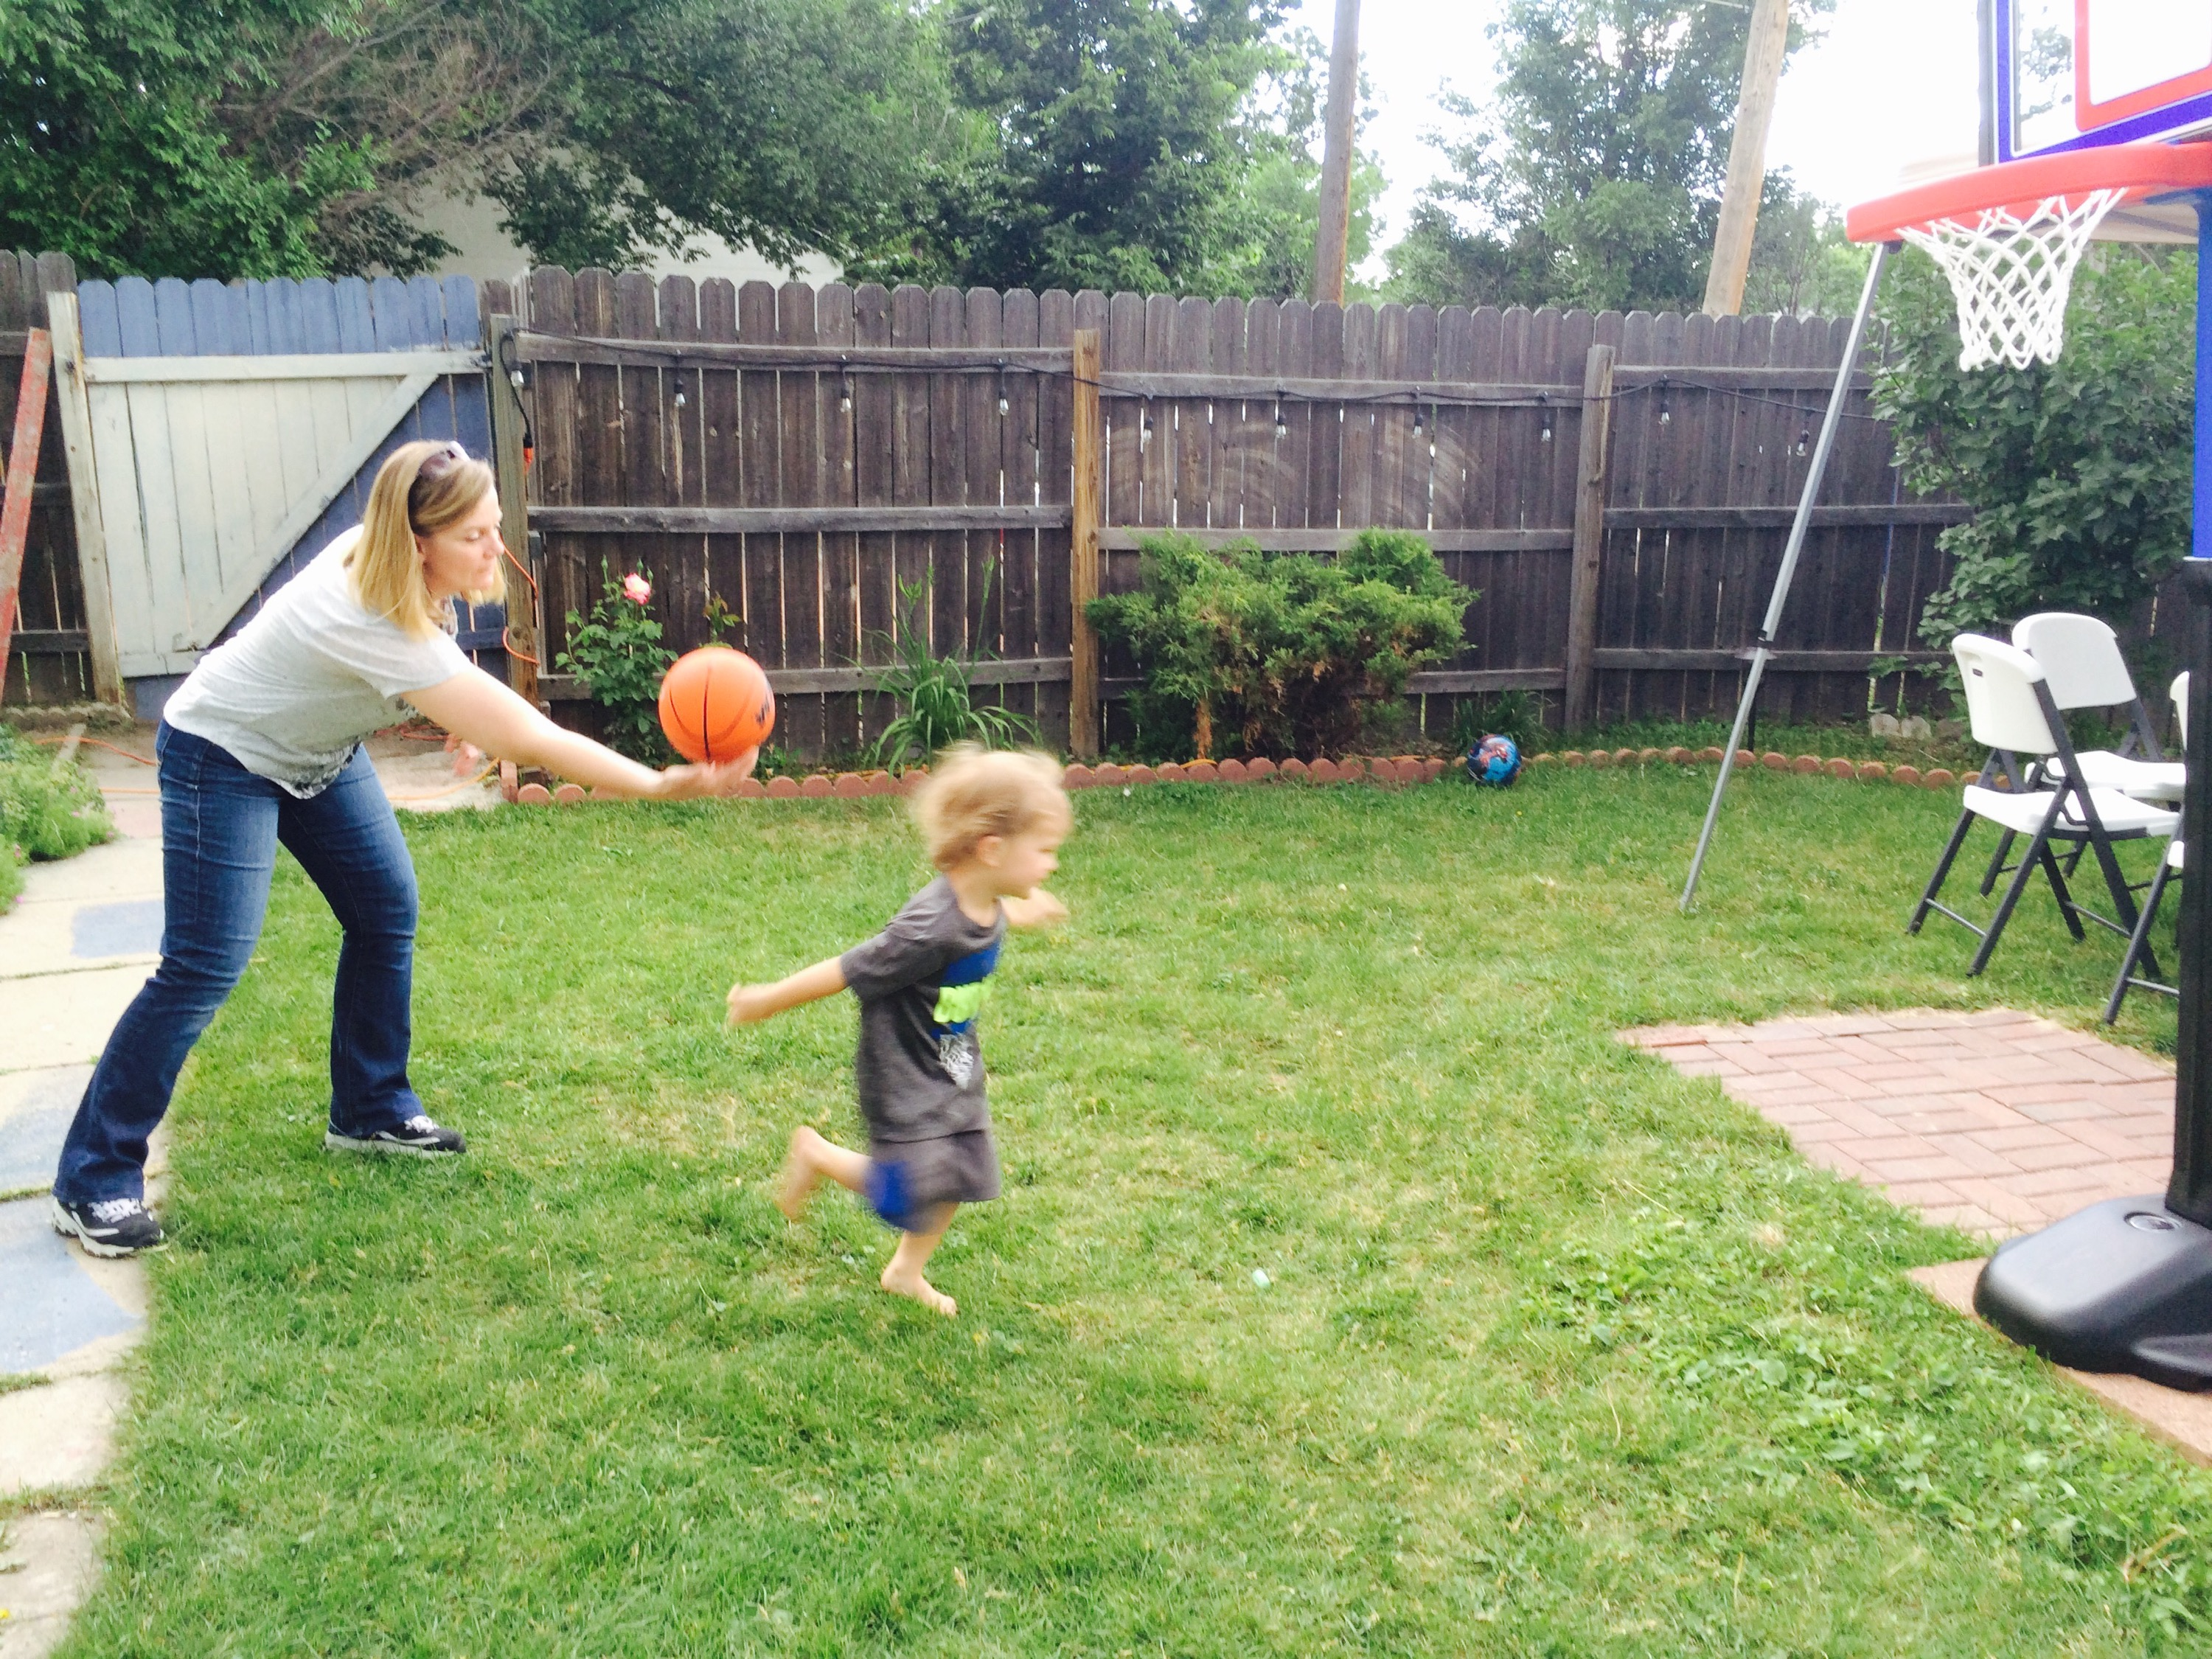 Felix and Grandma play with his new basketball hoop